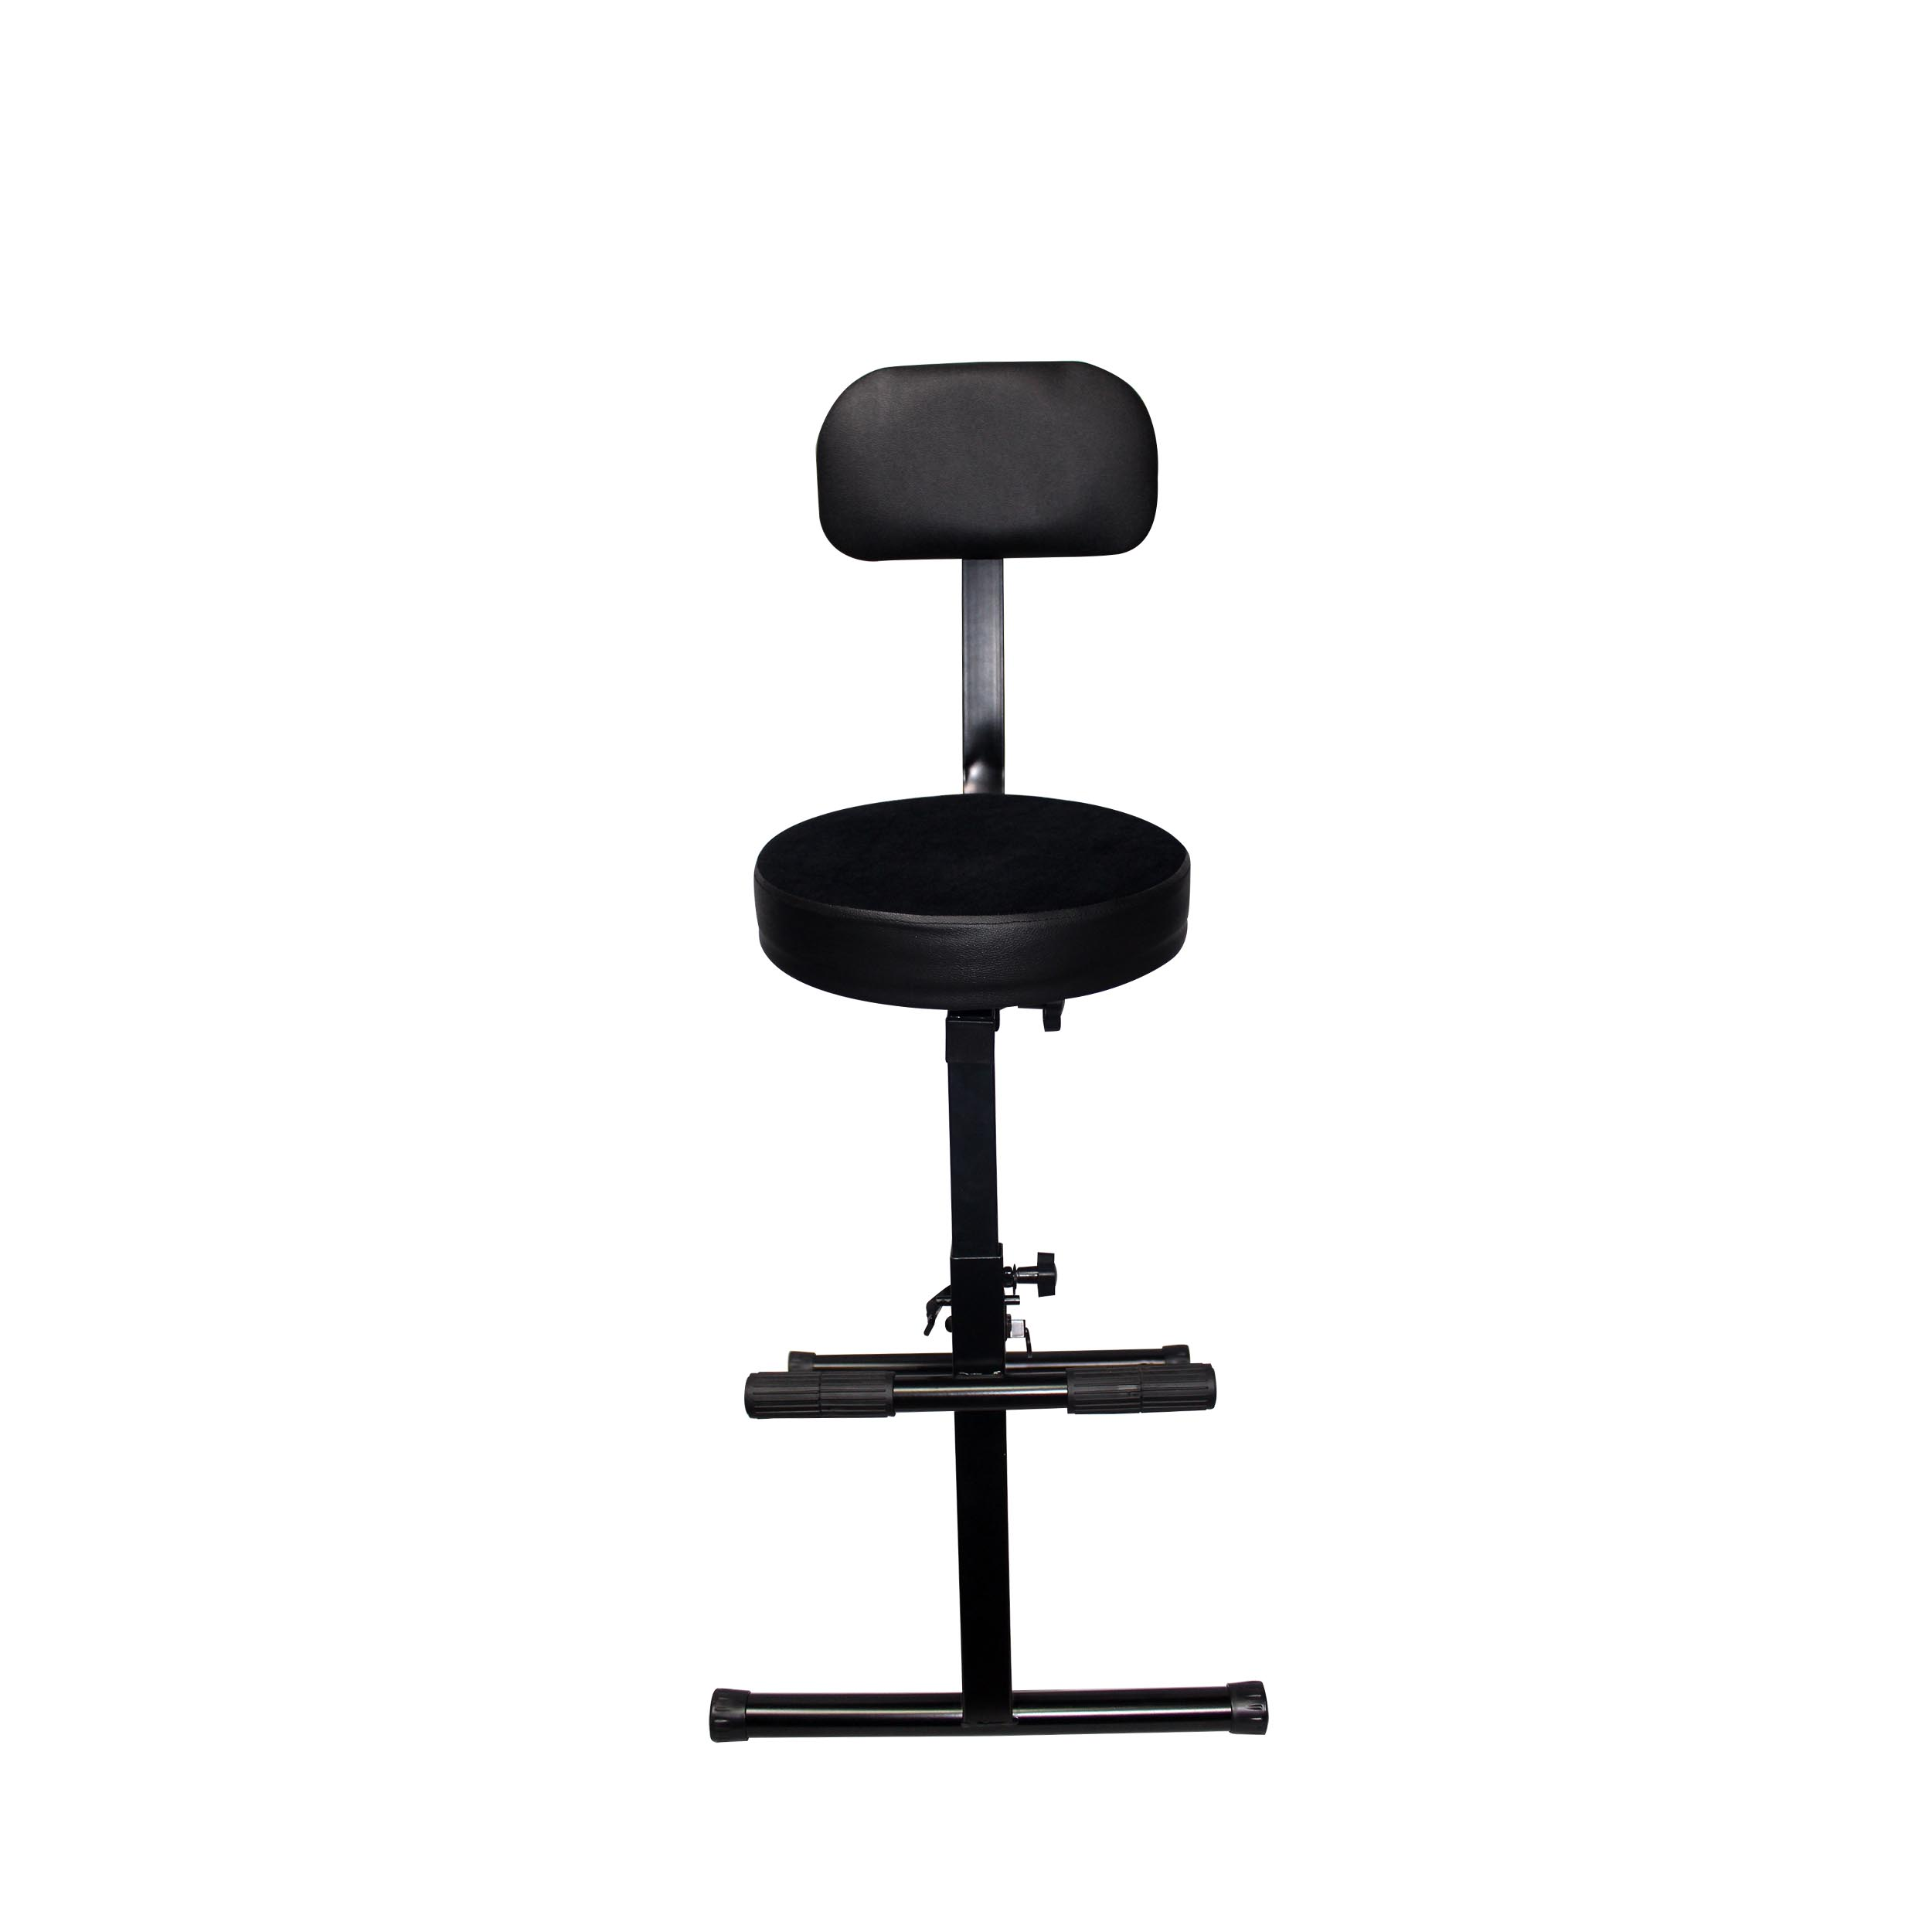 Portable DJ Adjustable KeyboardGuitar Drum velvet covered Padded foam chair | ProX Live Performance Gear  sc 1 st  ProX Live Performance Gear & Portable DJ Adjustable KeyboardGuitar Drum velvet covered ... islam-shia.org